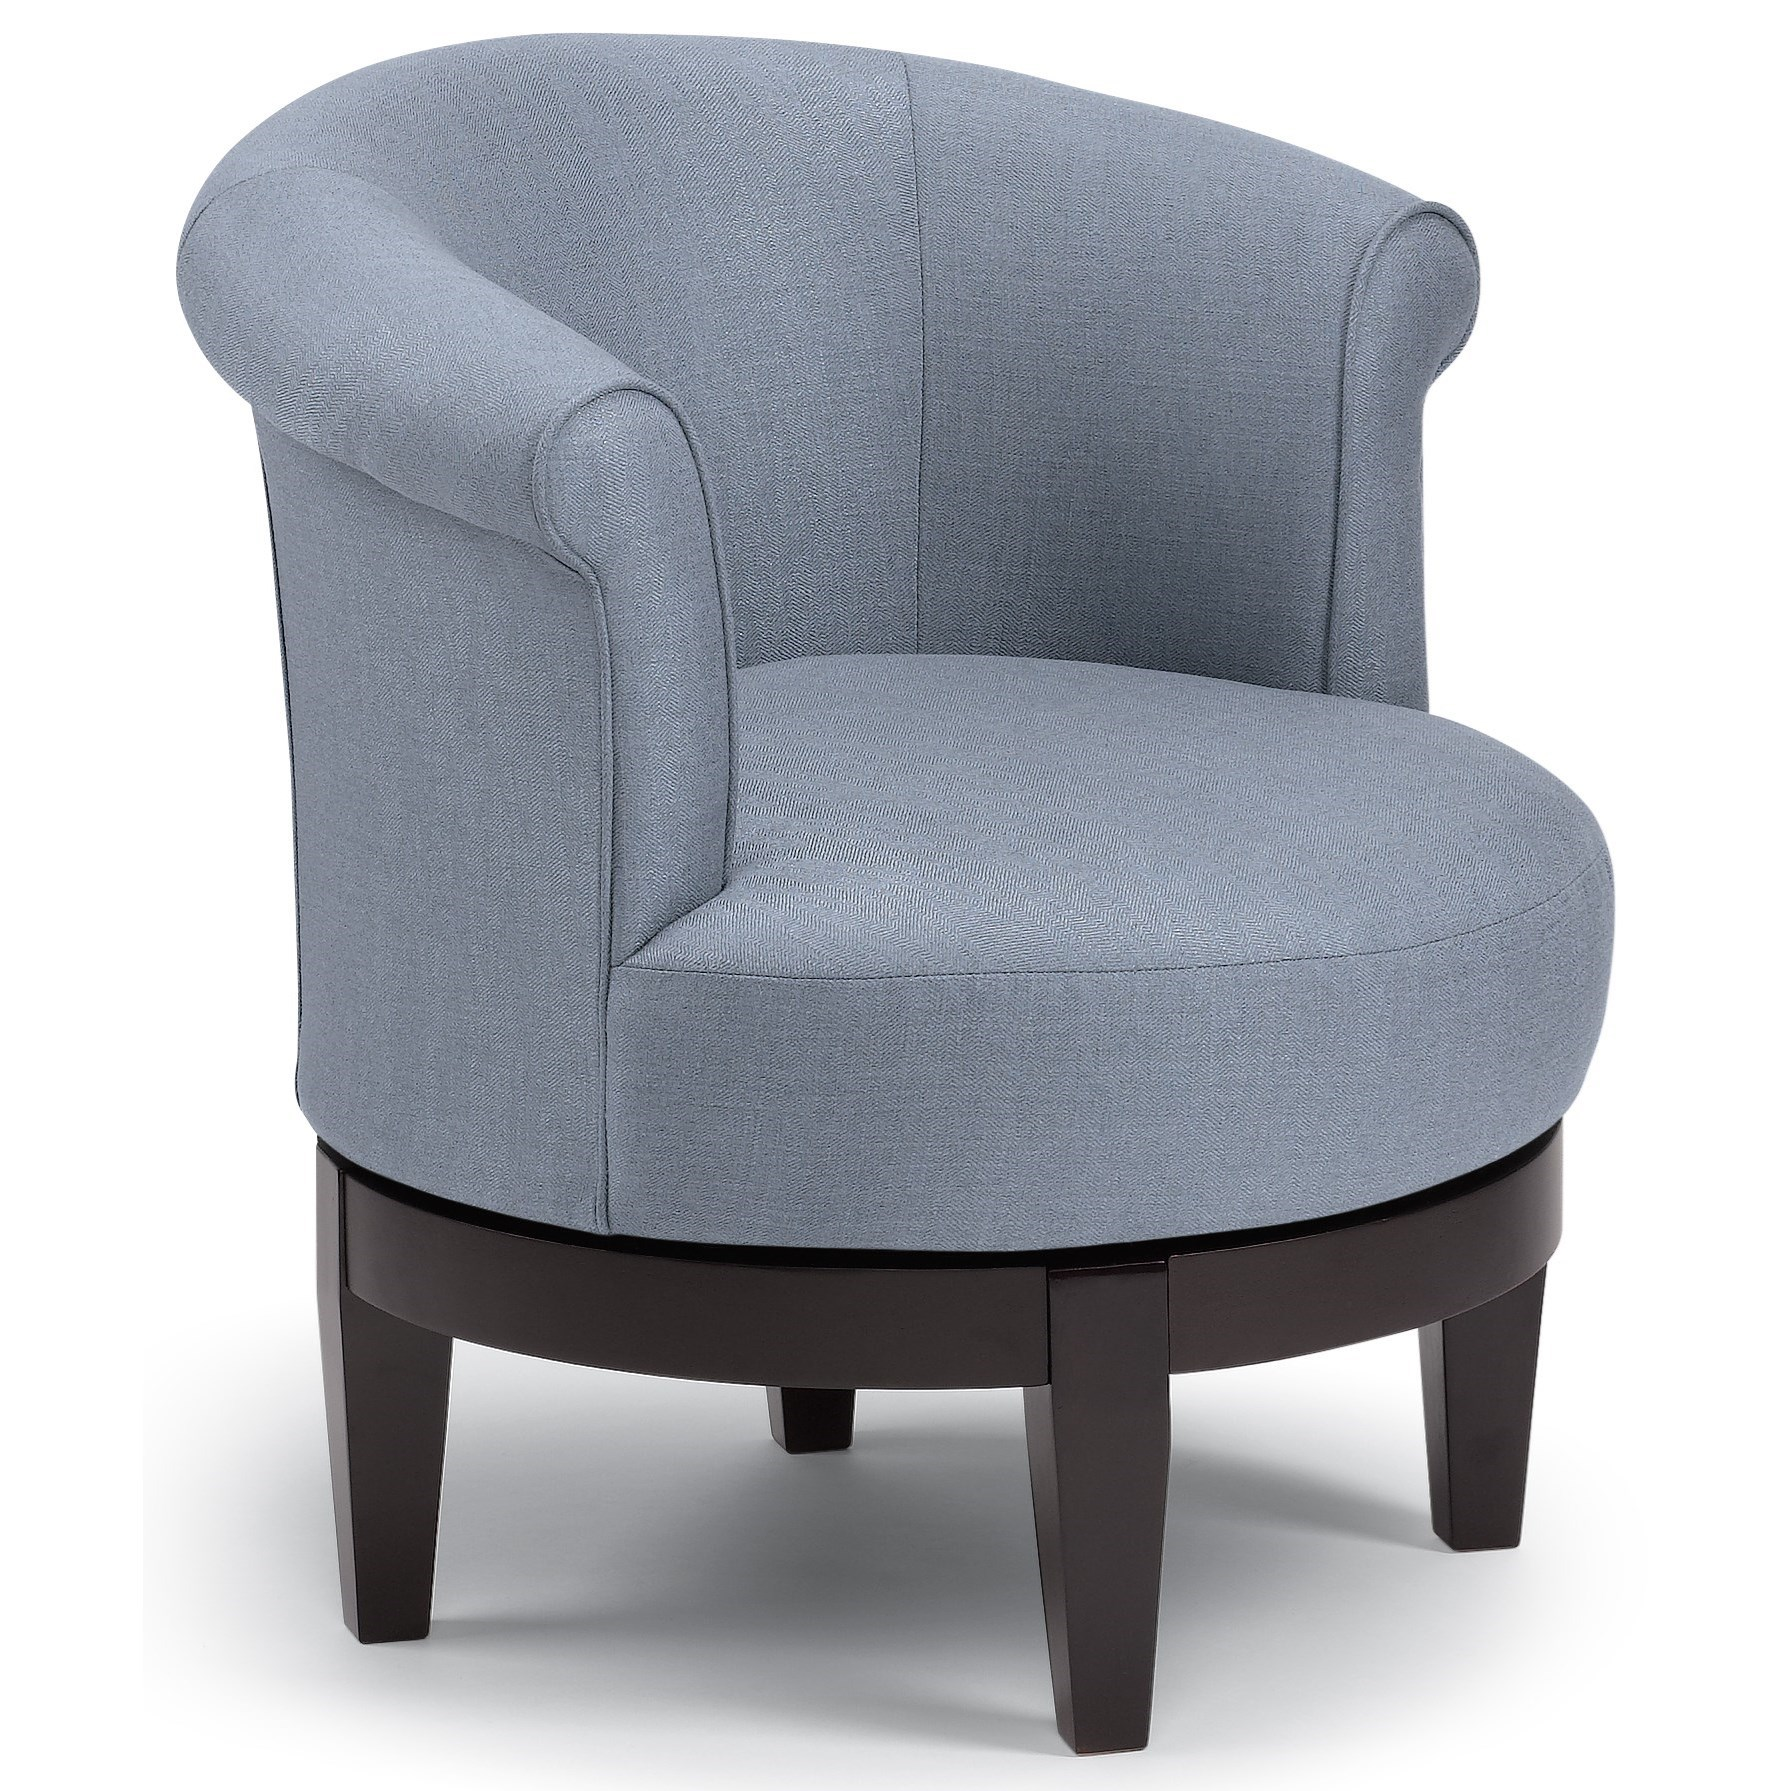 Chairs - Swivel Barrel Attica Swivel Chair by Best Home Furnishings at Wilson's Furniture